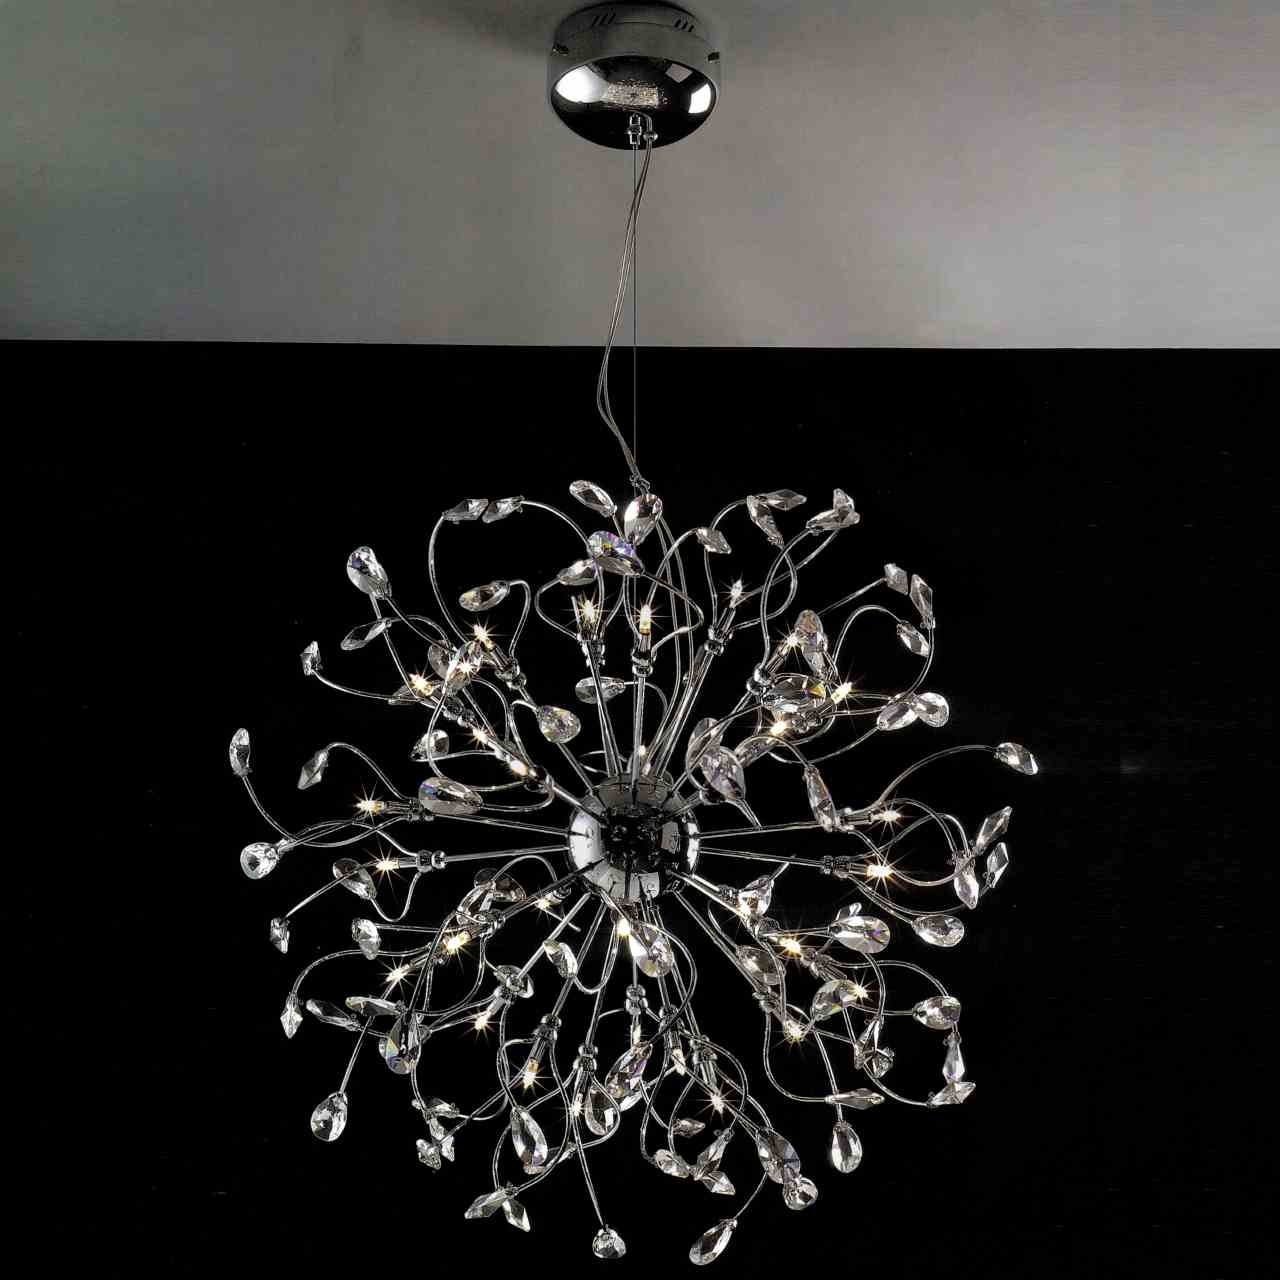 Brizzo Lighting Stores 22 Tempesta Modern Crystal Wall Sconce Pertaining To Modern Chrome Chandeliers (#5 of 12)